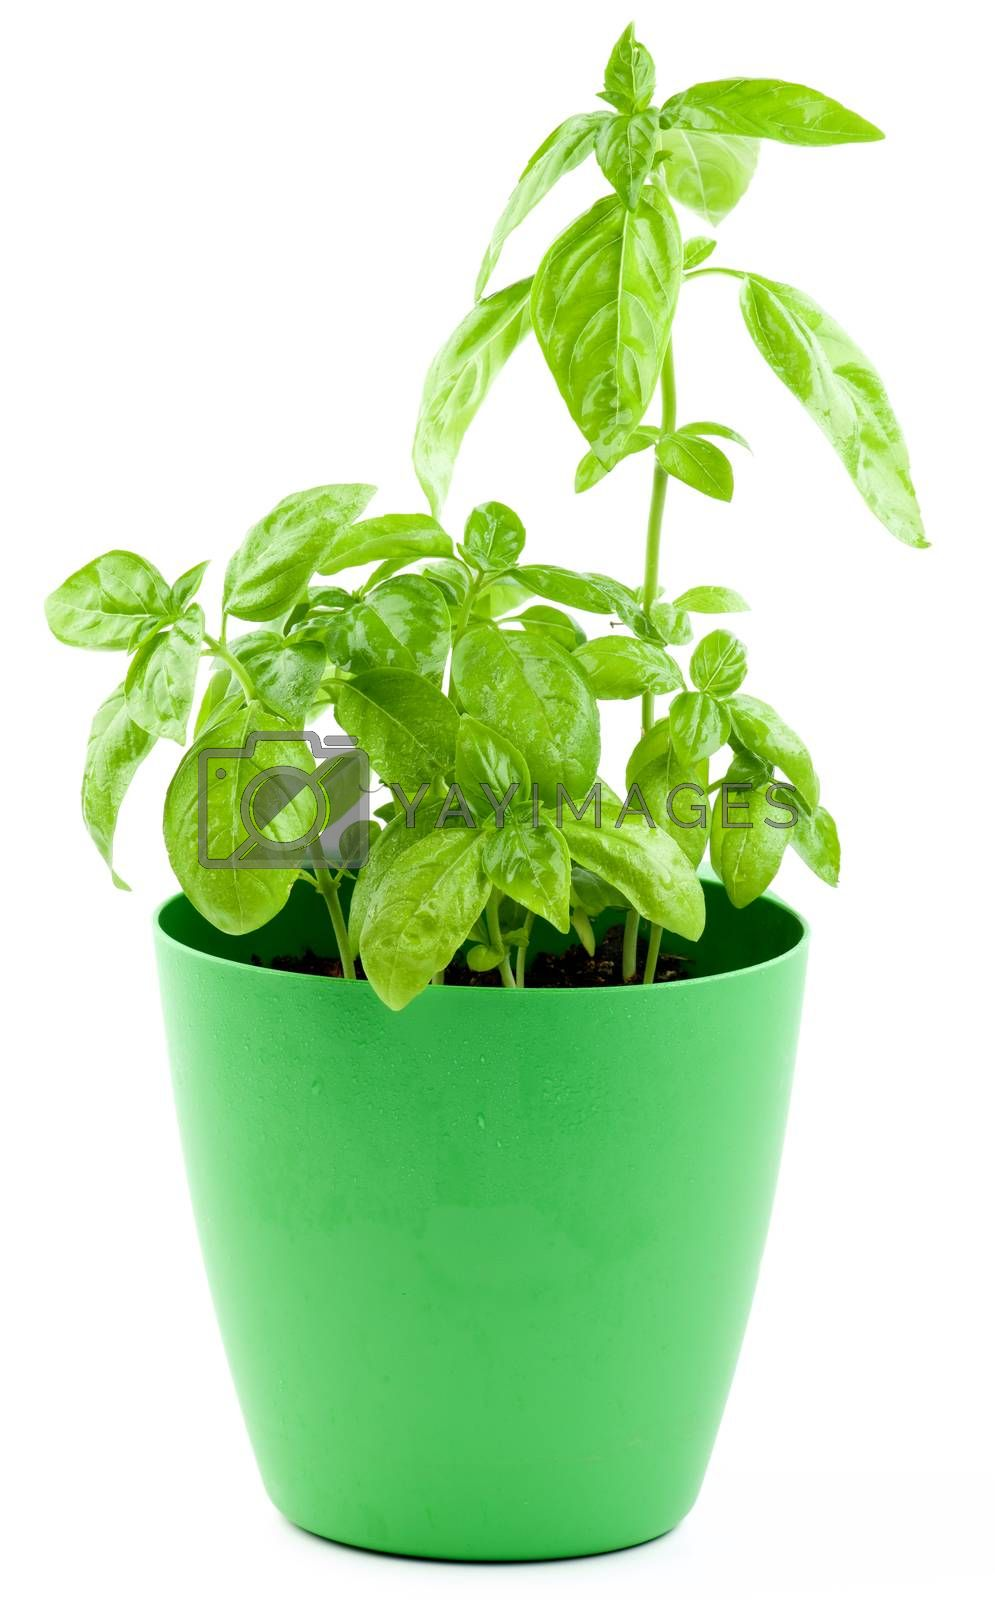 Bunch of Fresh Green Lush Foliage Basil in Green Flower Pot isolated on White background